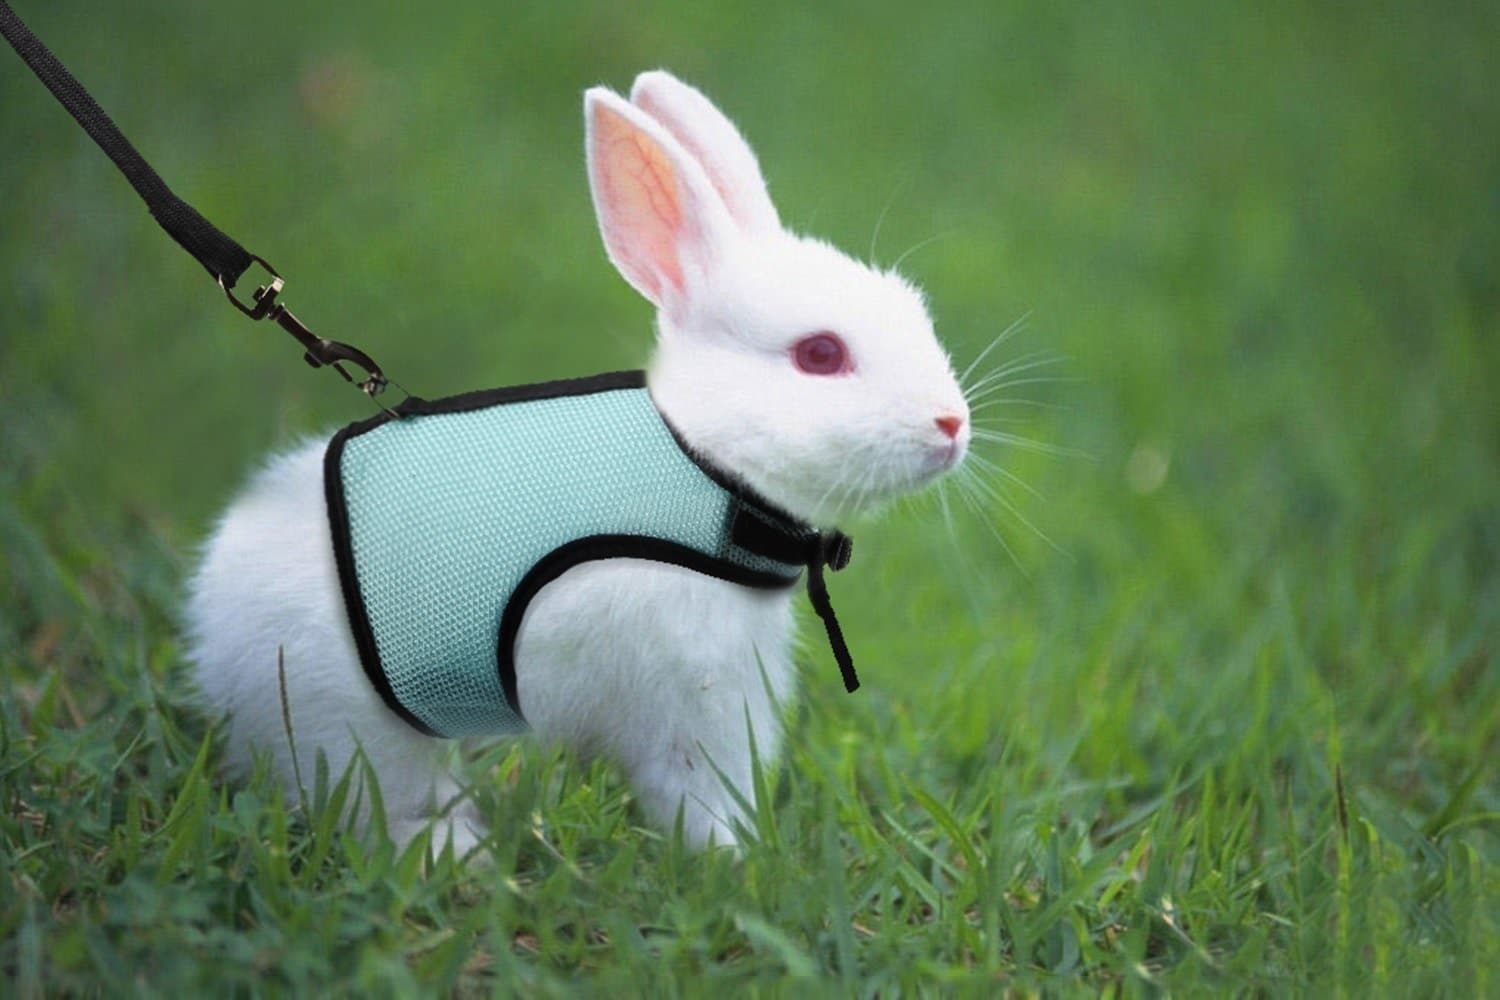 What type of harness is best for a rabbit?